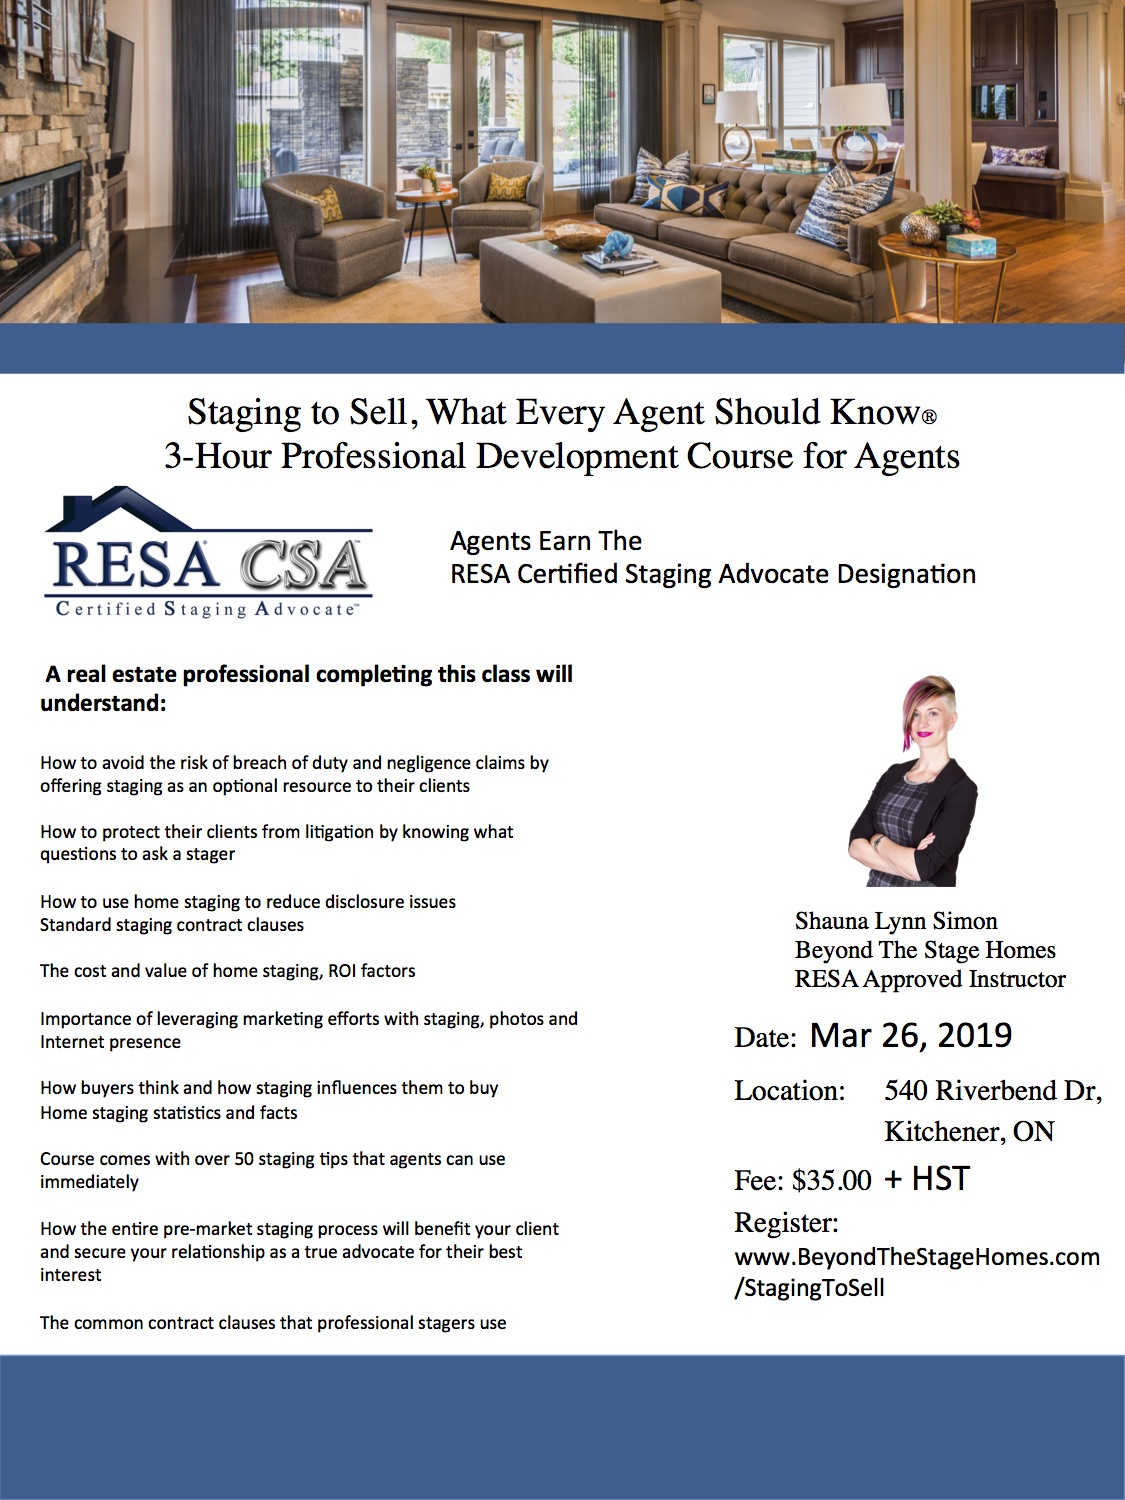 KWAR Staging to Sell Flyer - 26Mar19.jpg